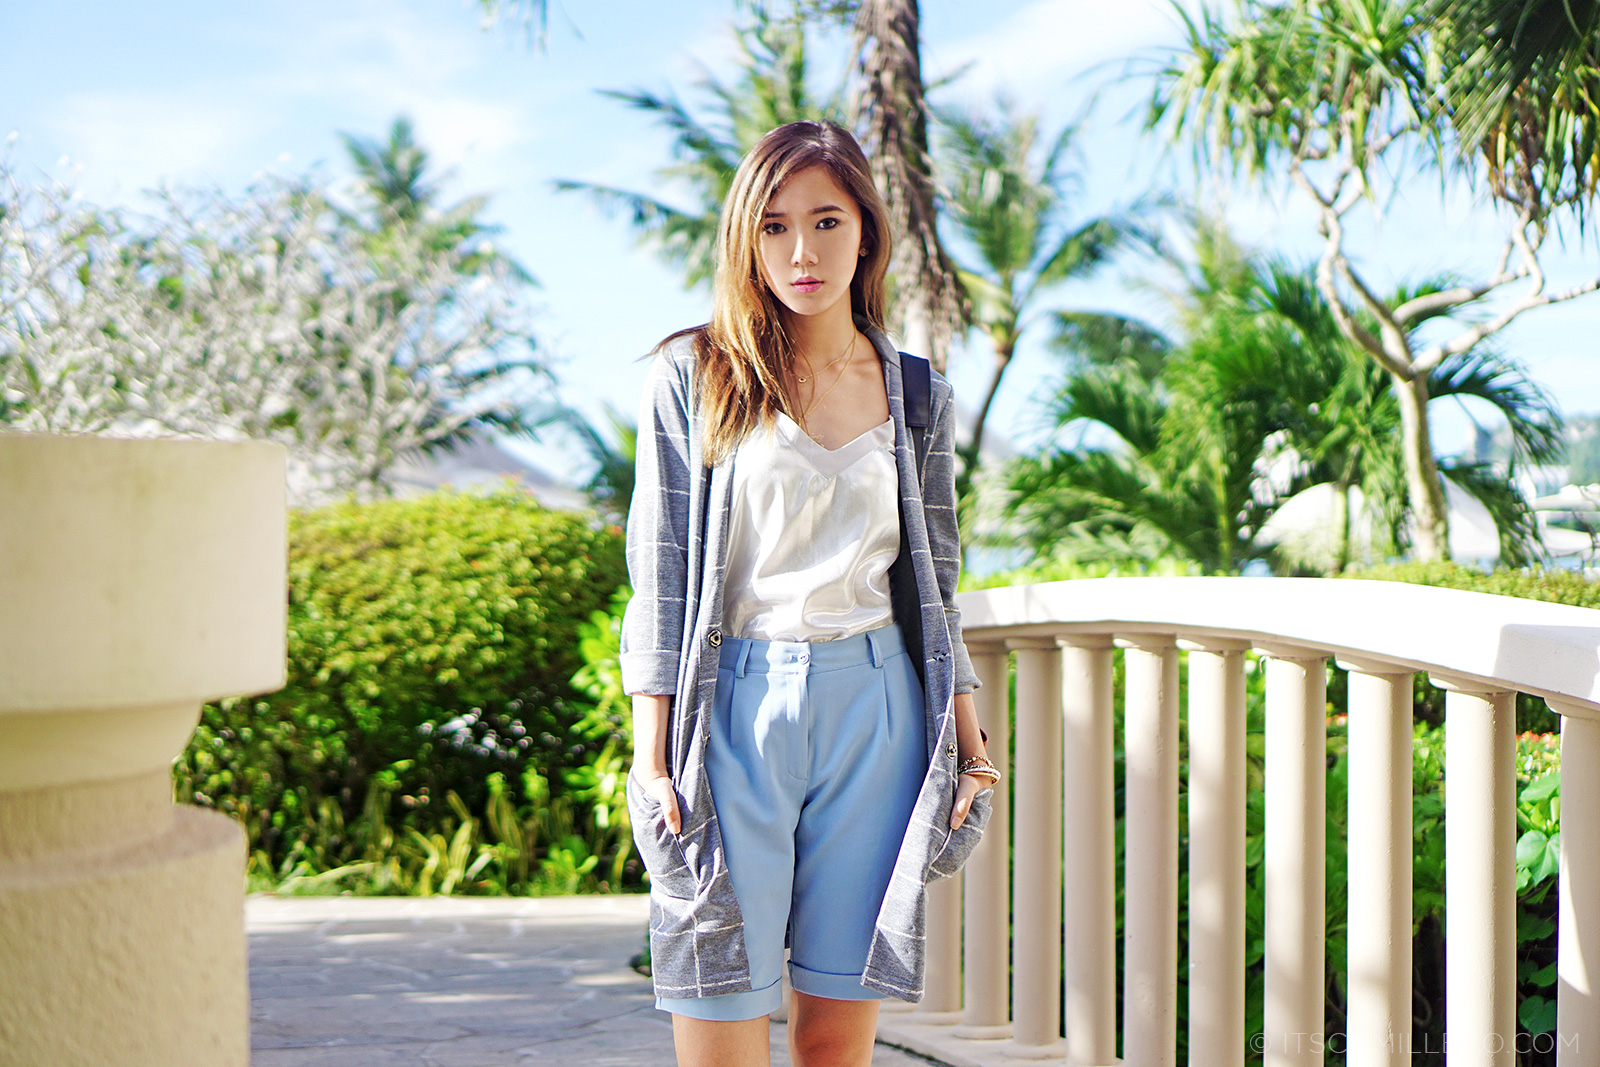 SheInside Blazer, Zara Top, Egoist Shorts at Hyatt Regency Guam | www.itscamilleco.com